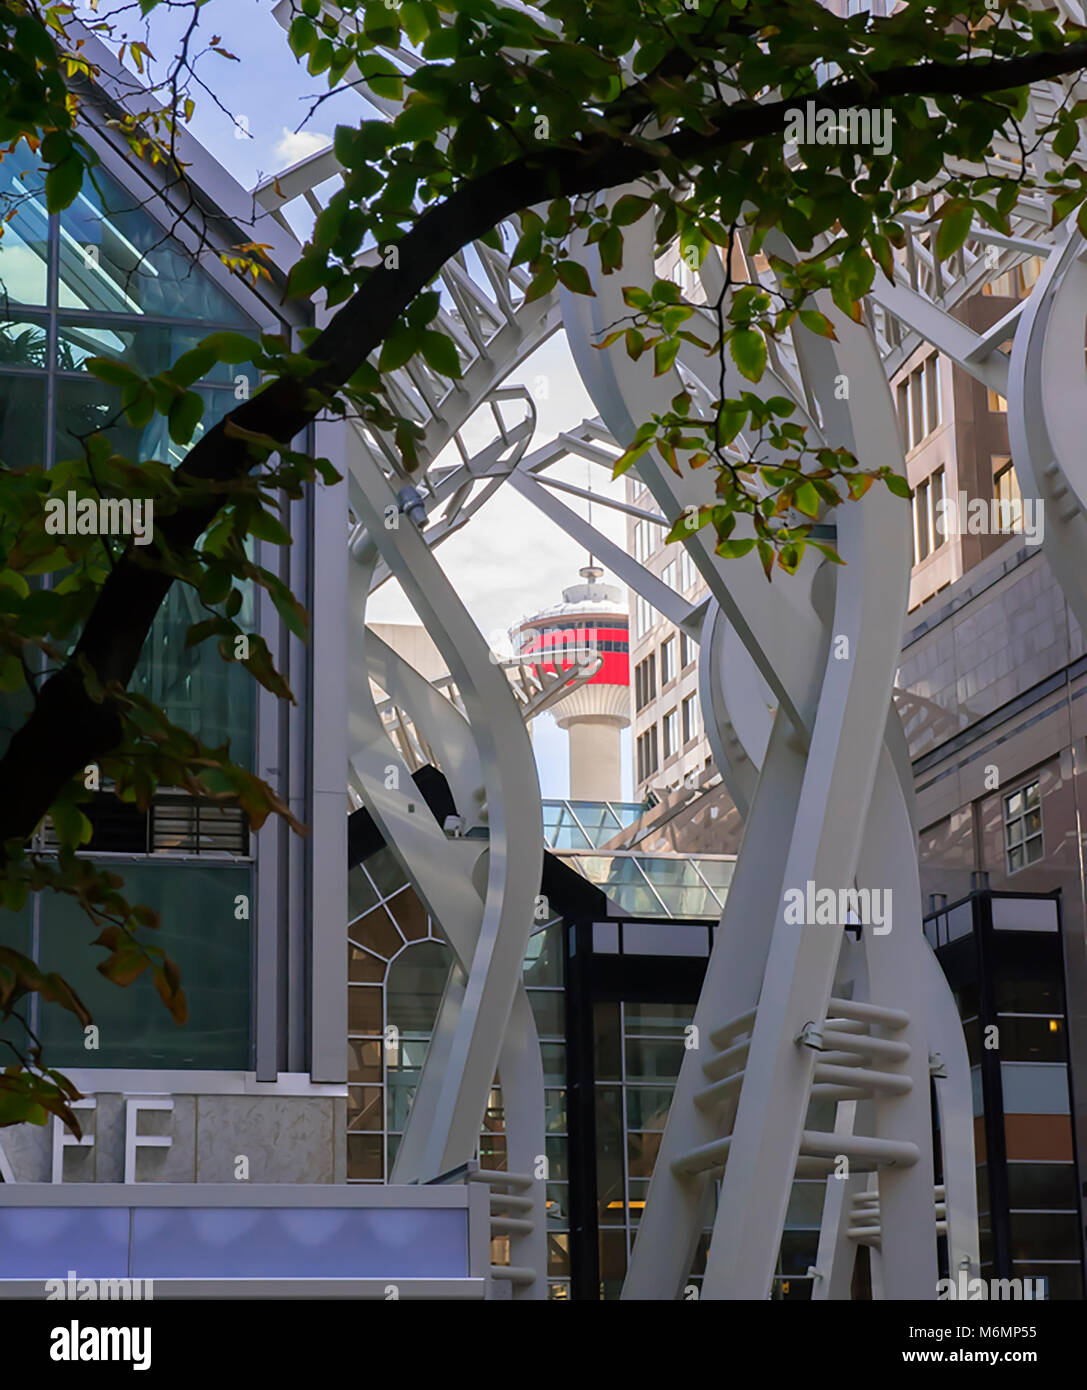 Galleria Trees sculptures with the iconic Calgary Tower shown in the distance. - Stock Image